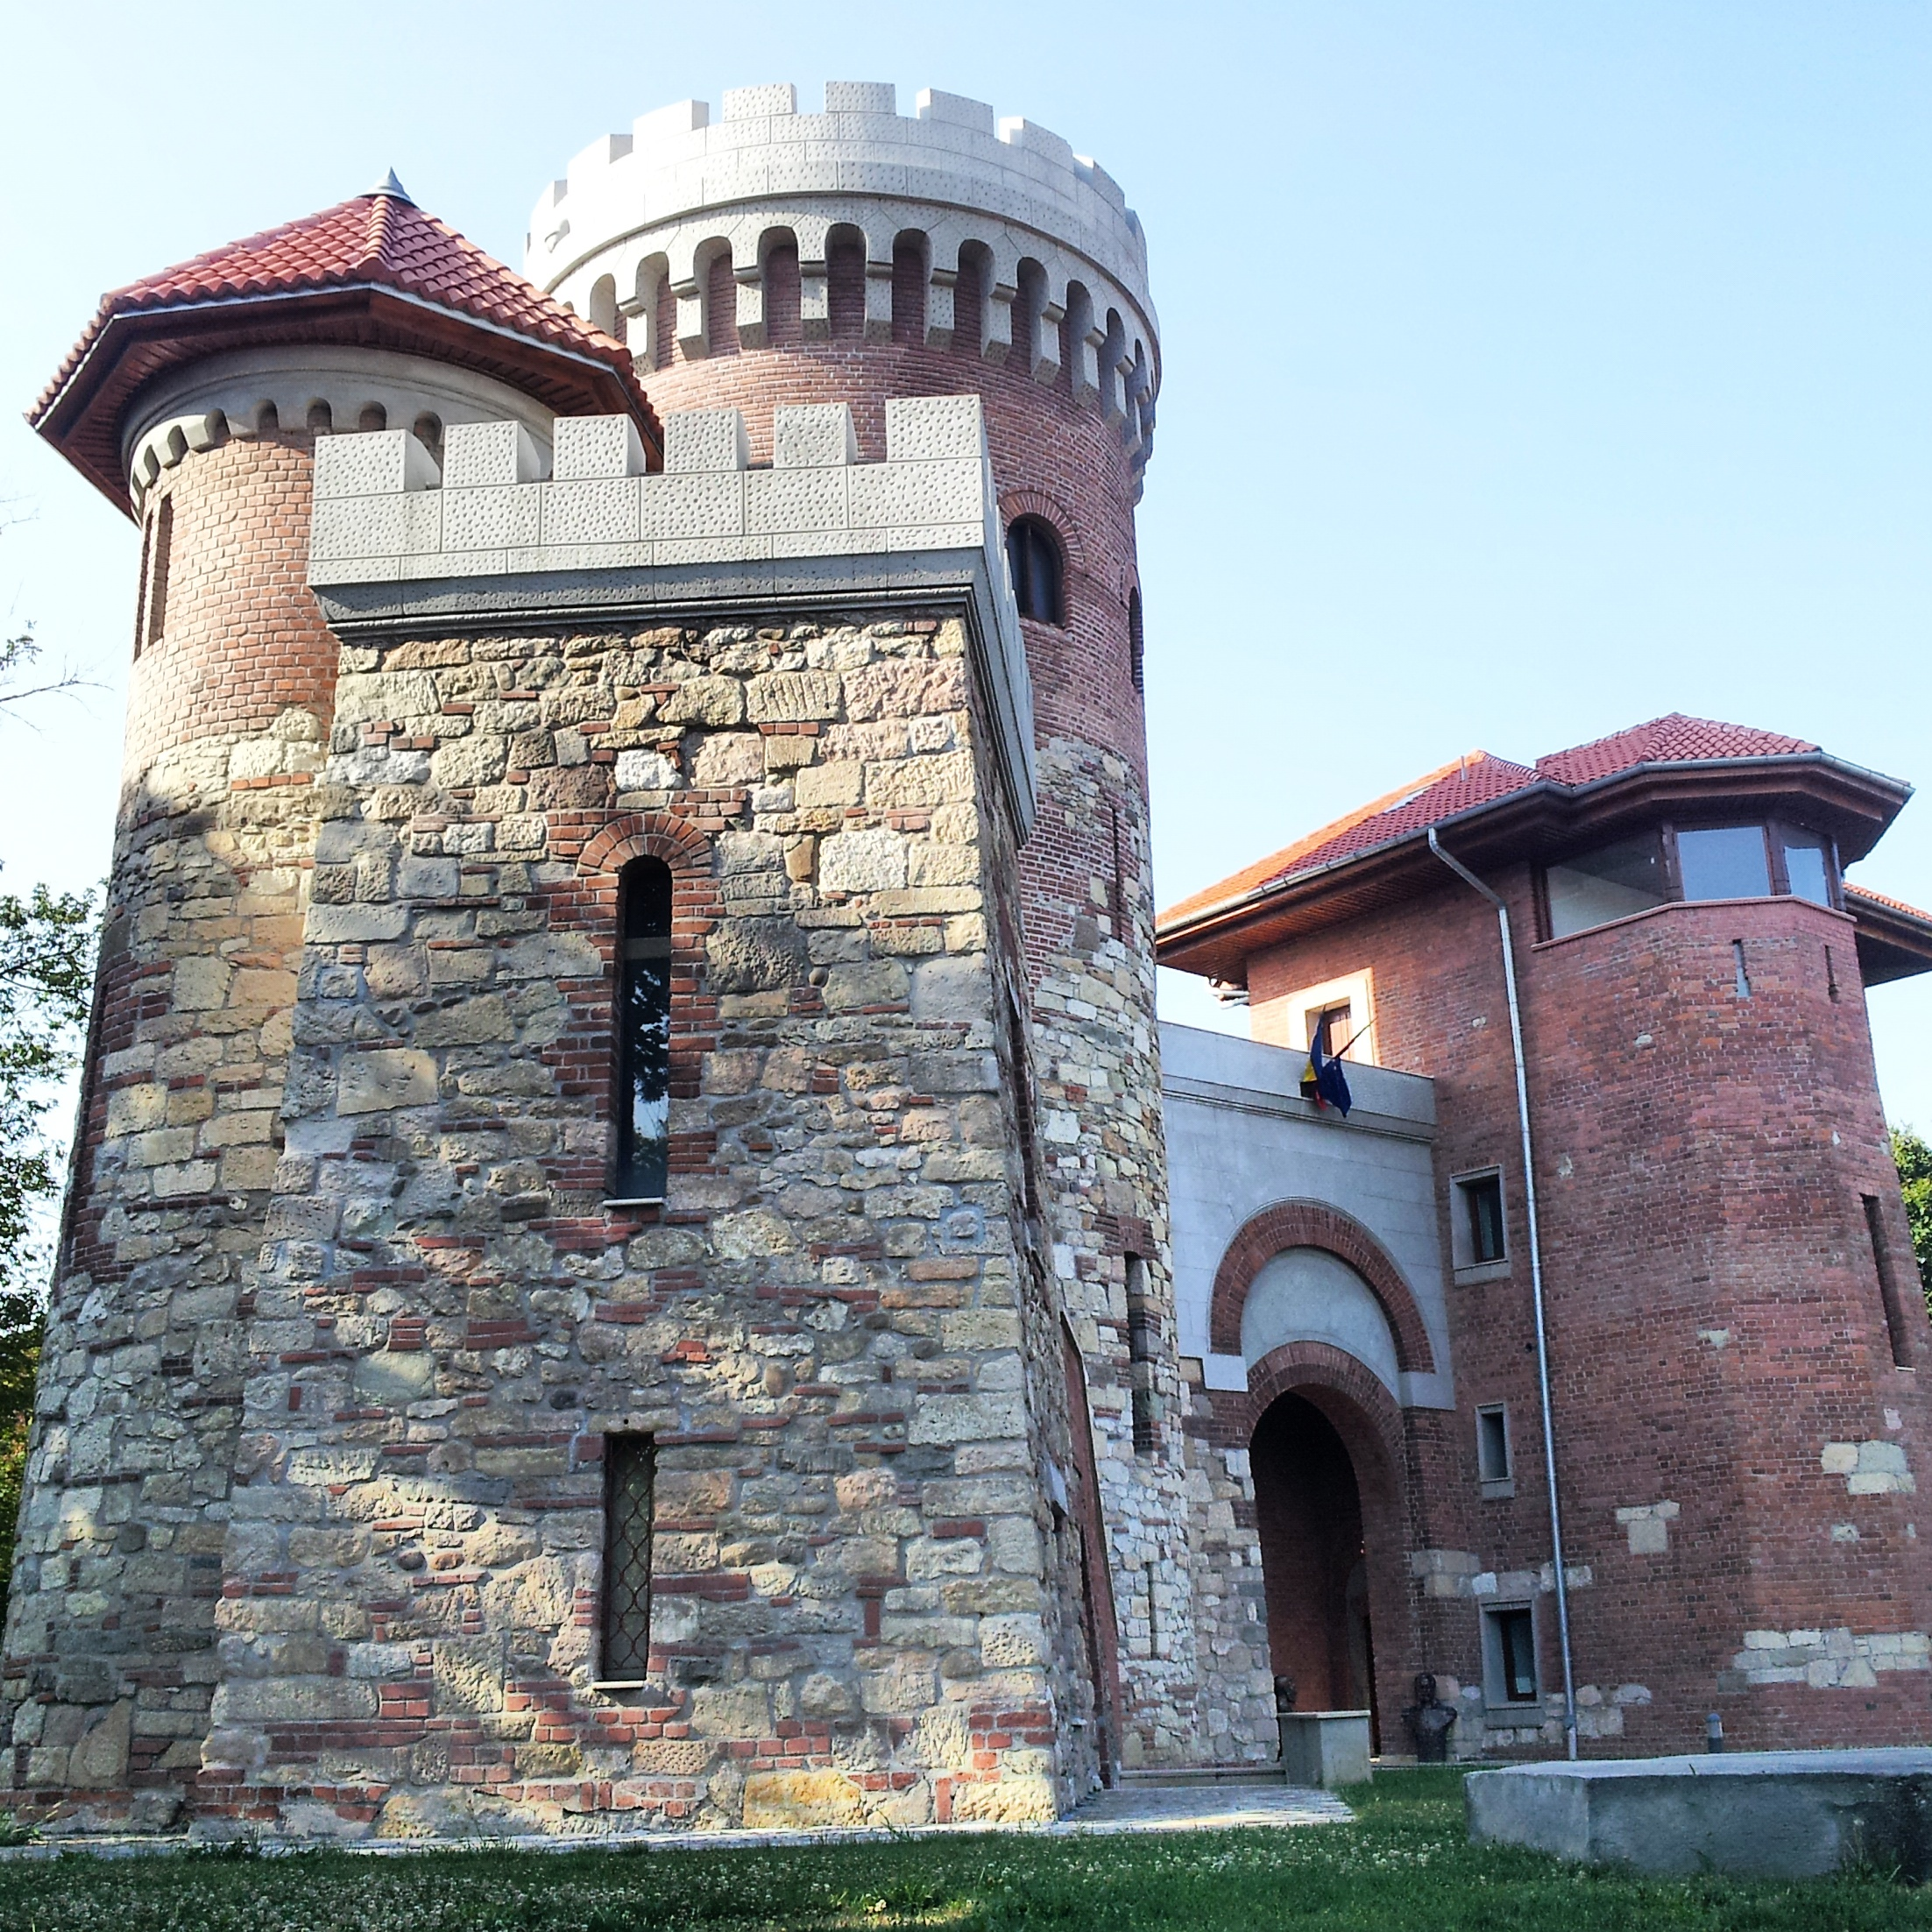 Vlad Tepes castle in Bucharest